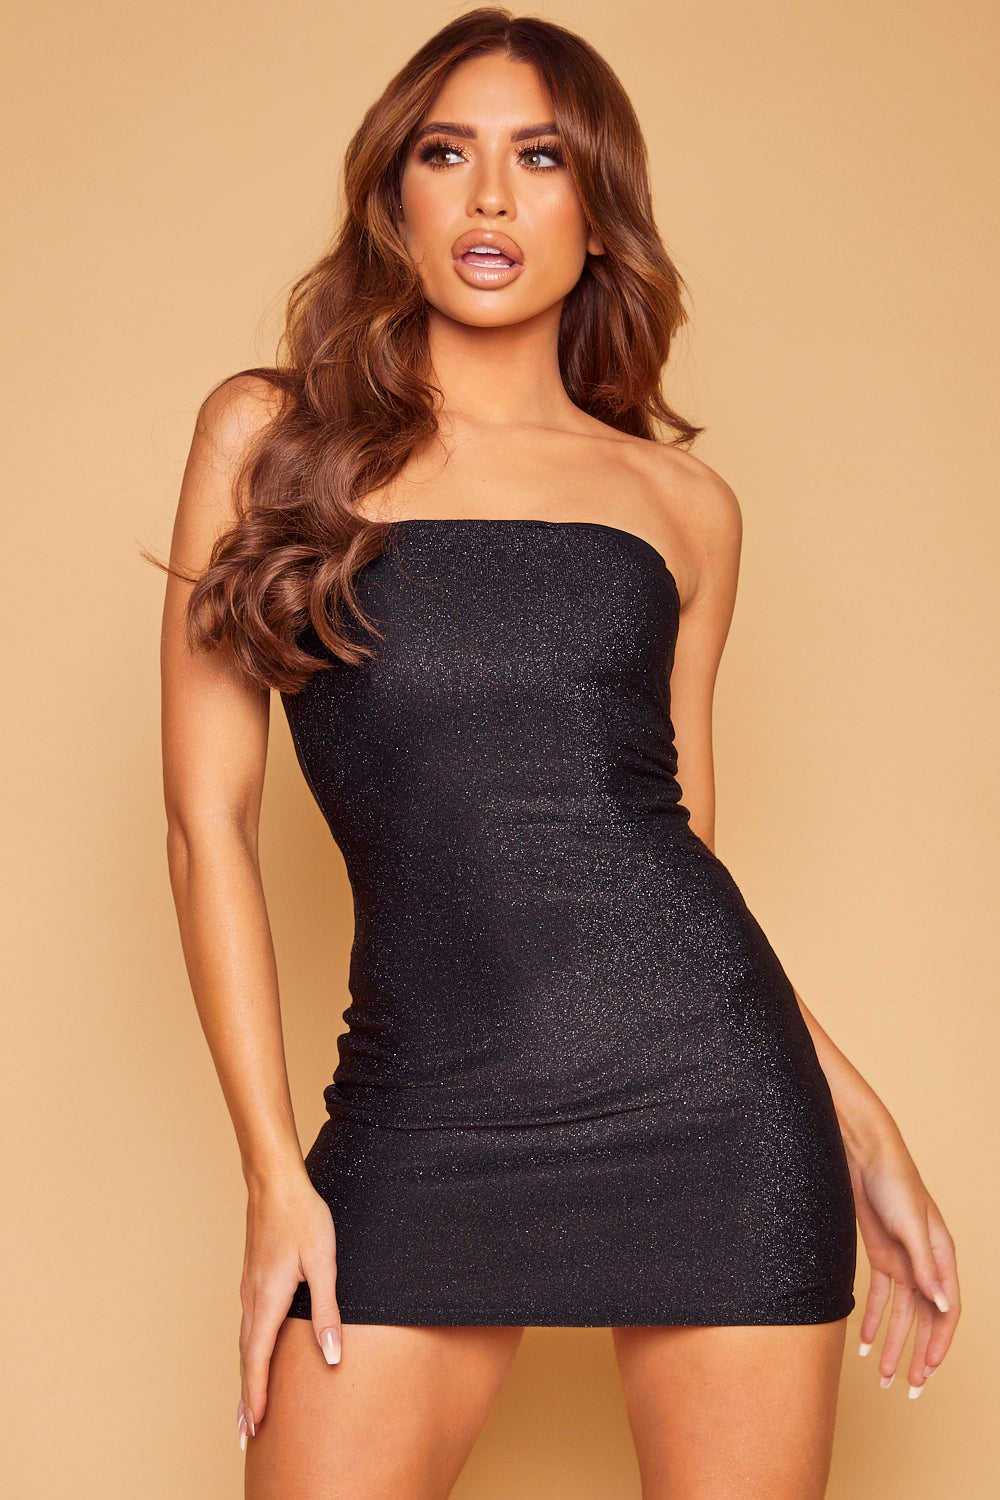 Shimmy Lurex Shimmer Dress - Black